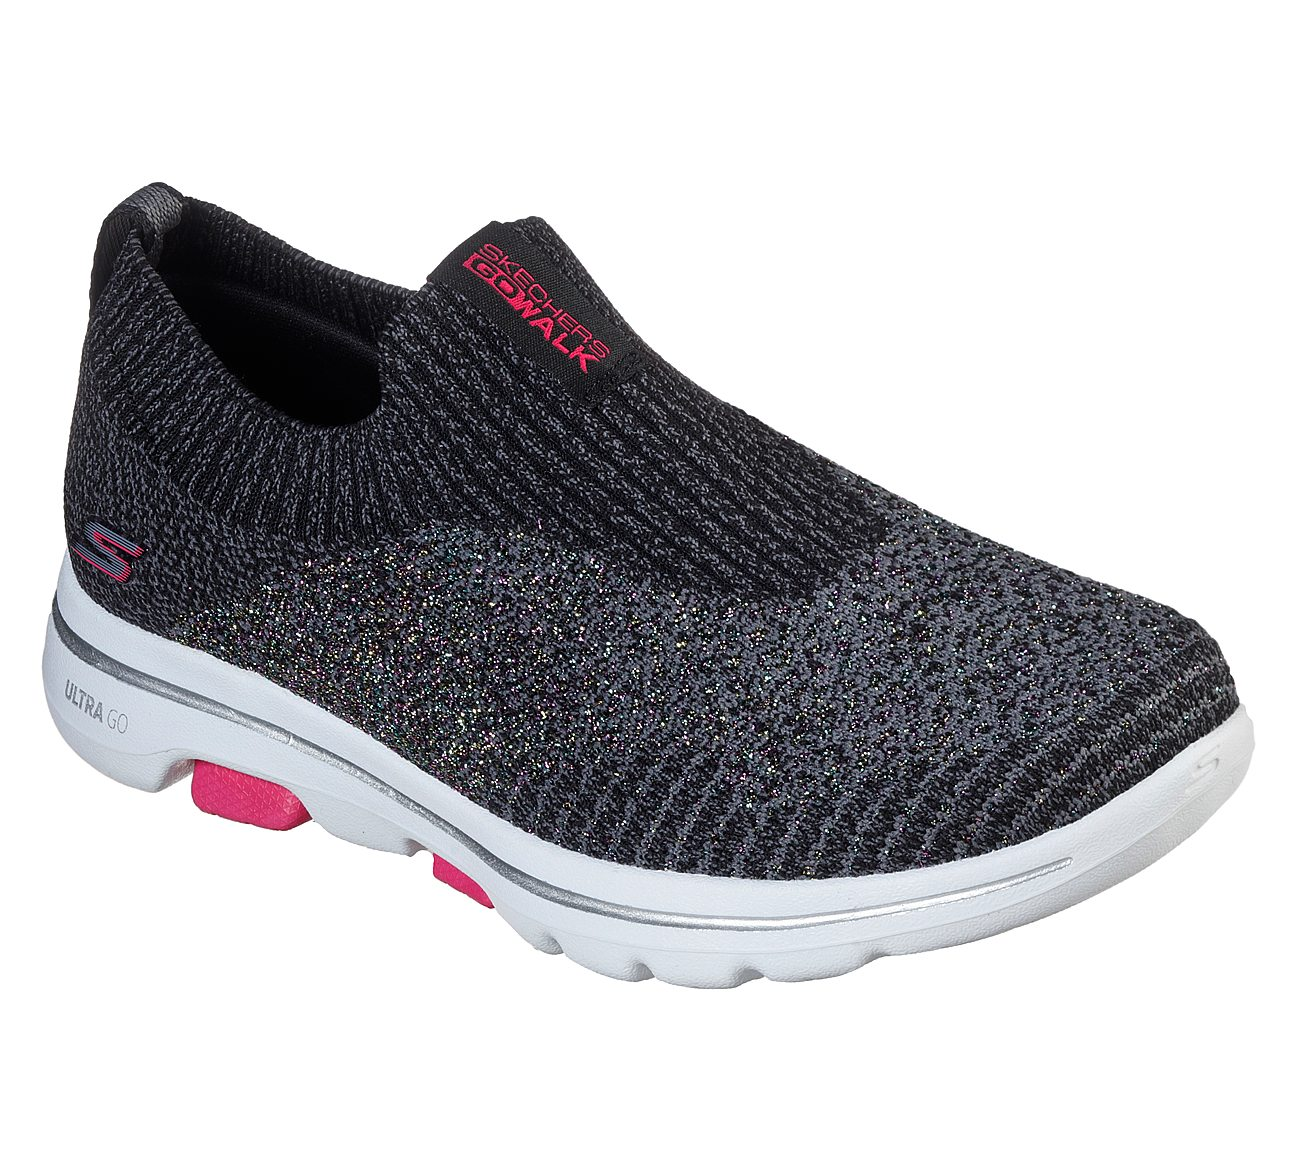 Skechers GOwalk 5 - Enlighten